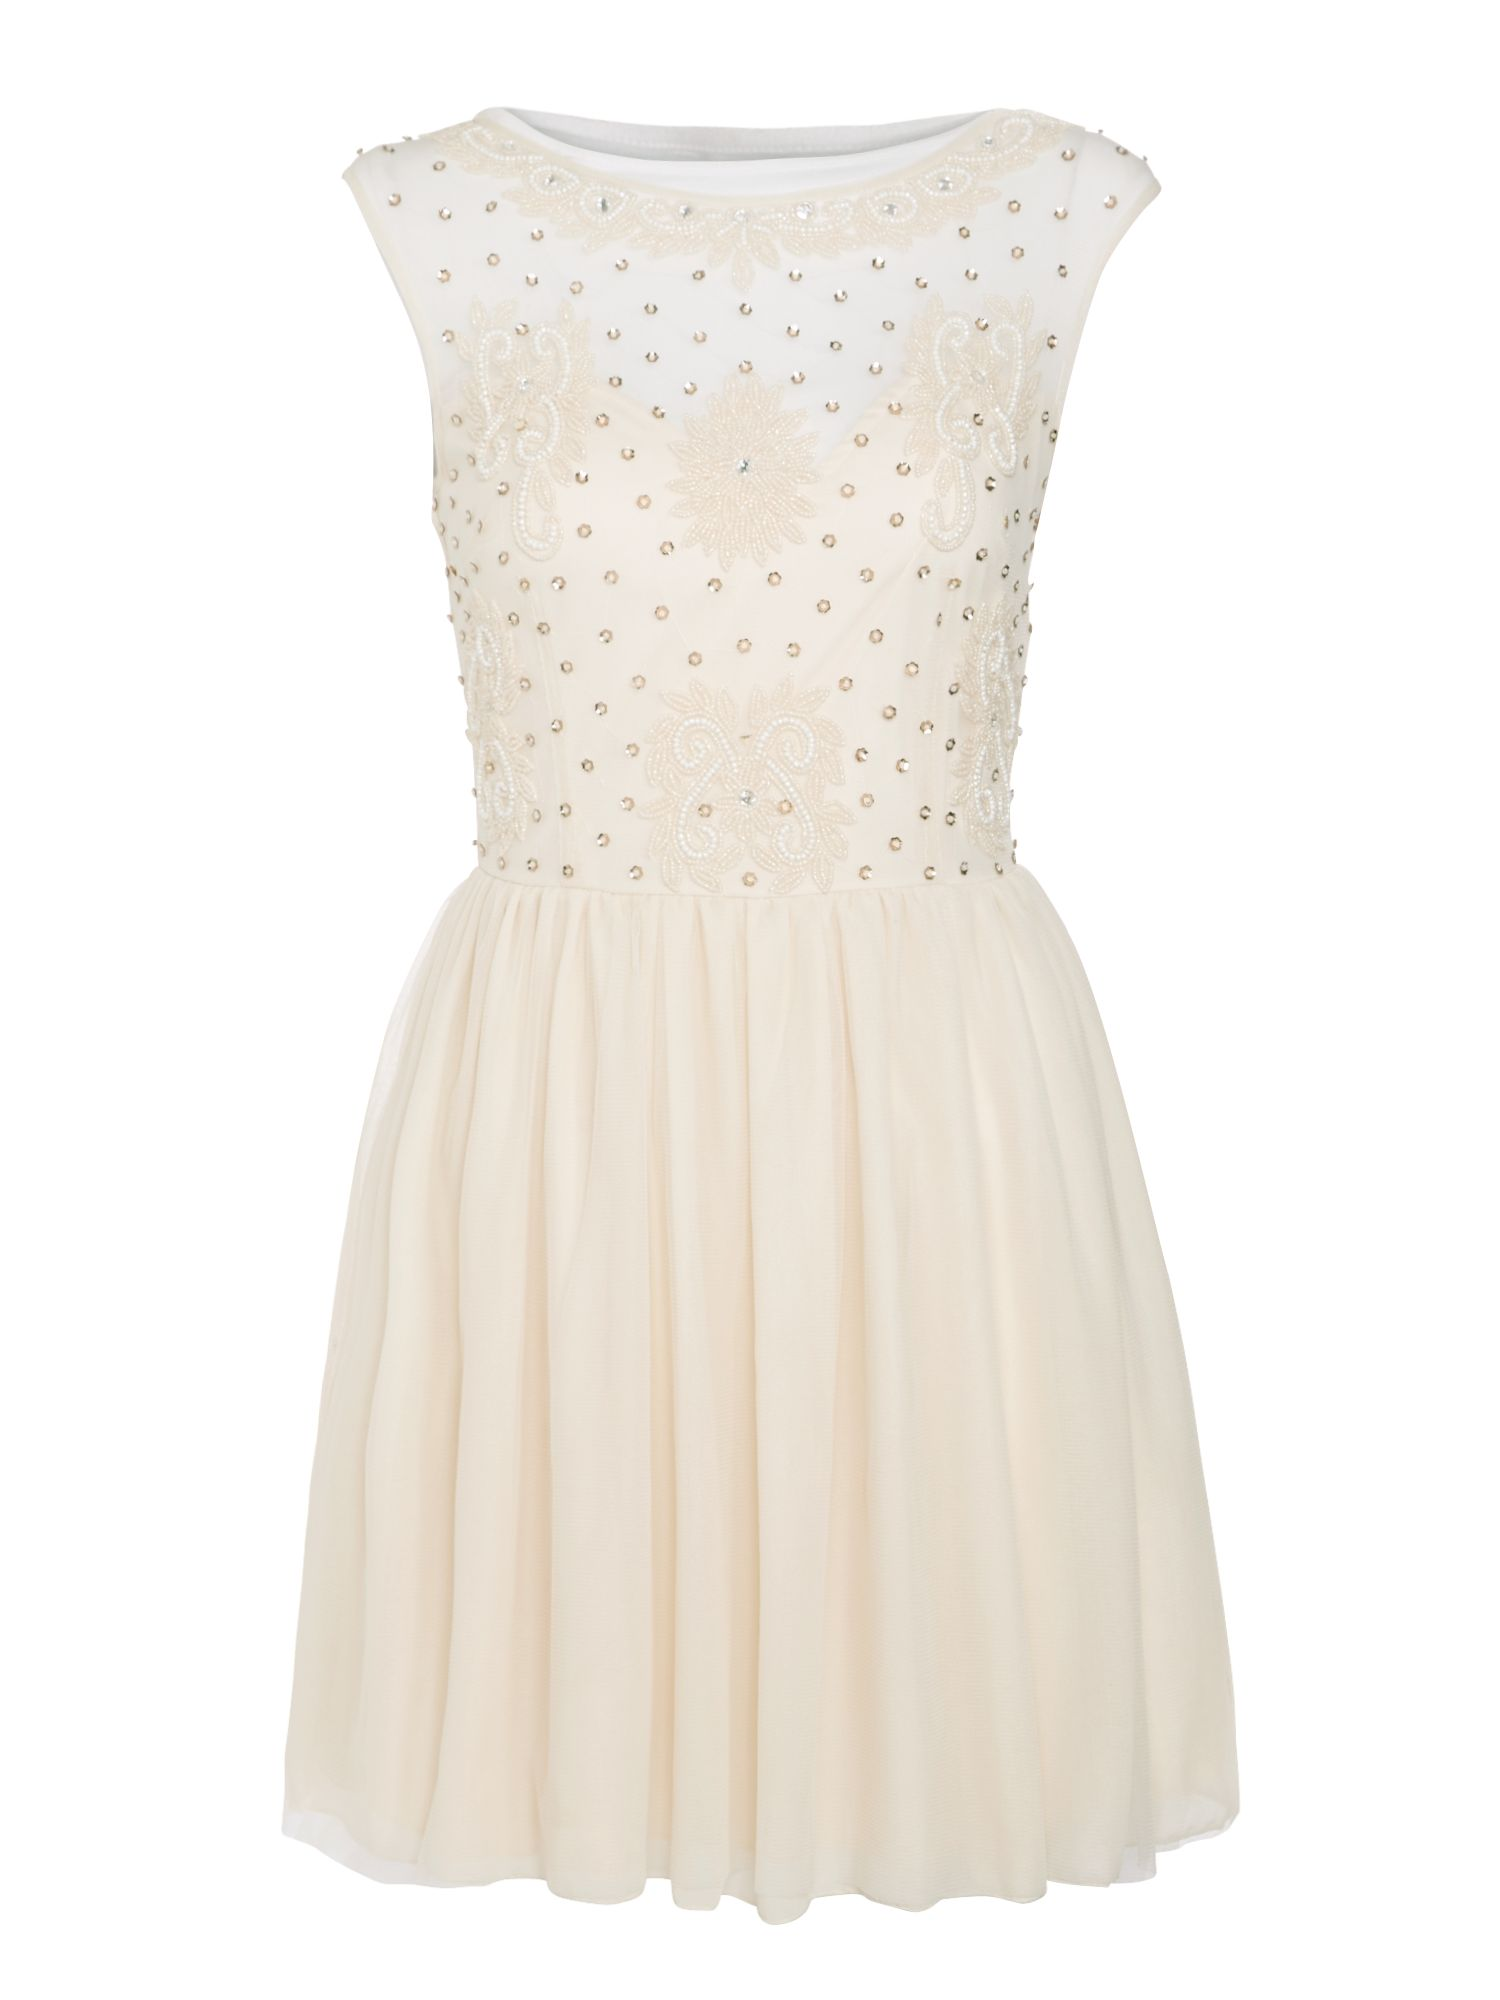 Lace And Beads Sleeveless Mesh Top Fit And Flare Dress, Cream